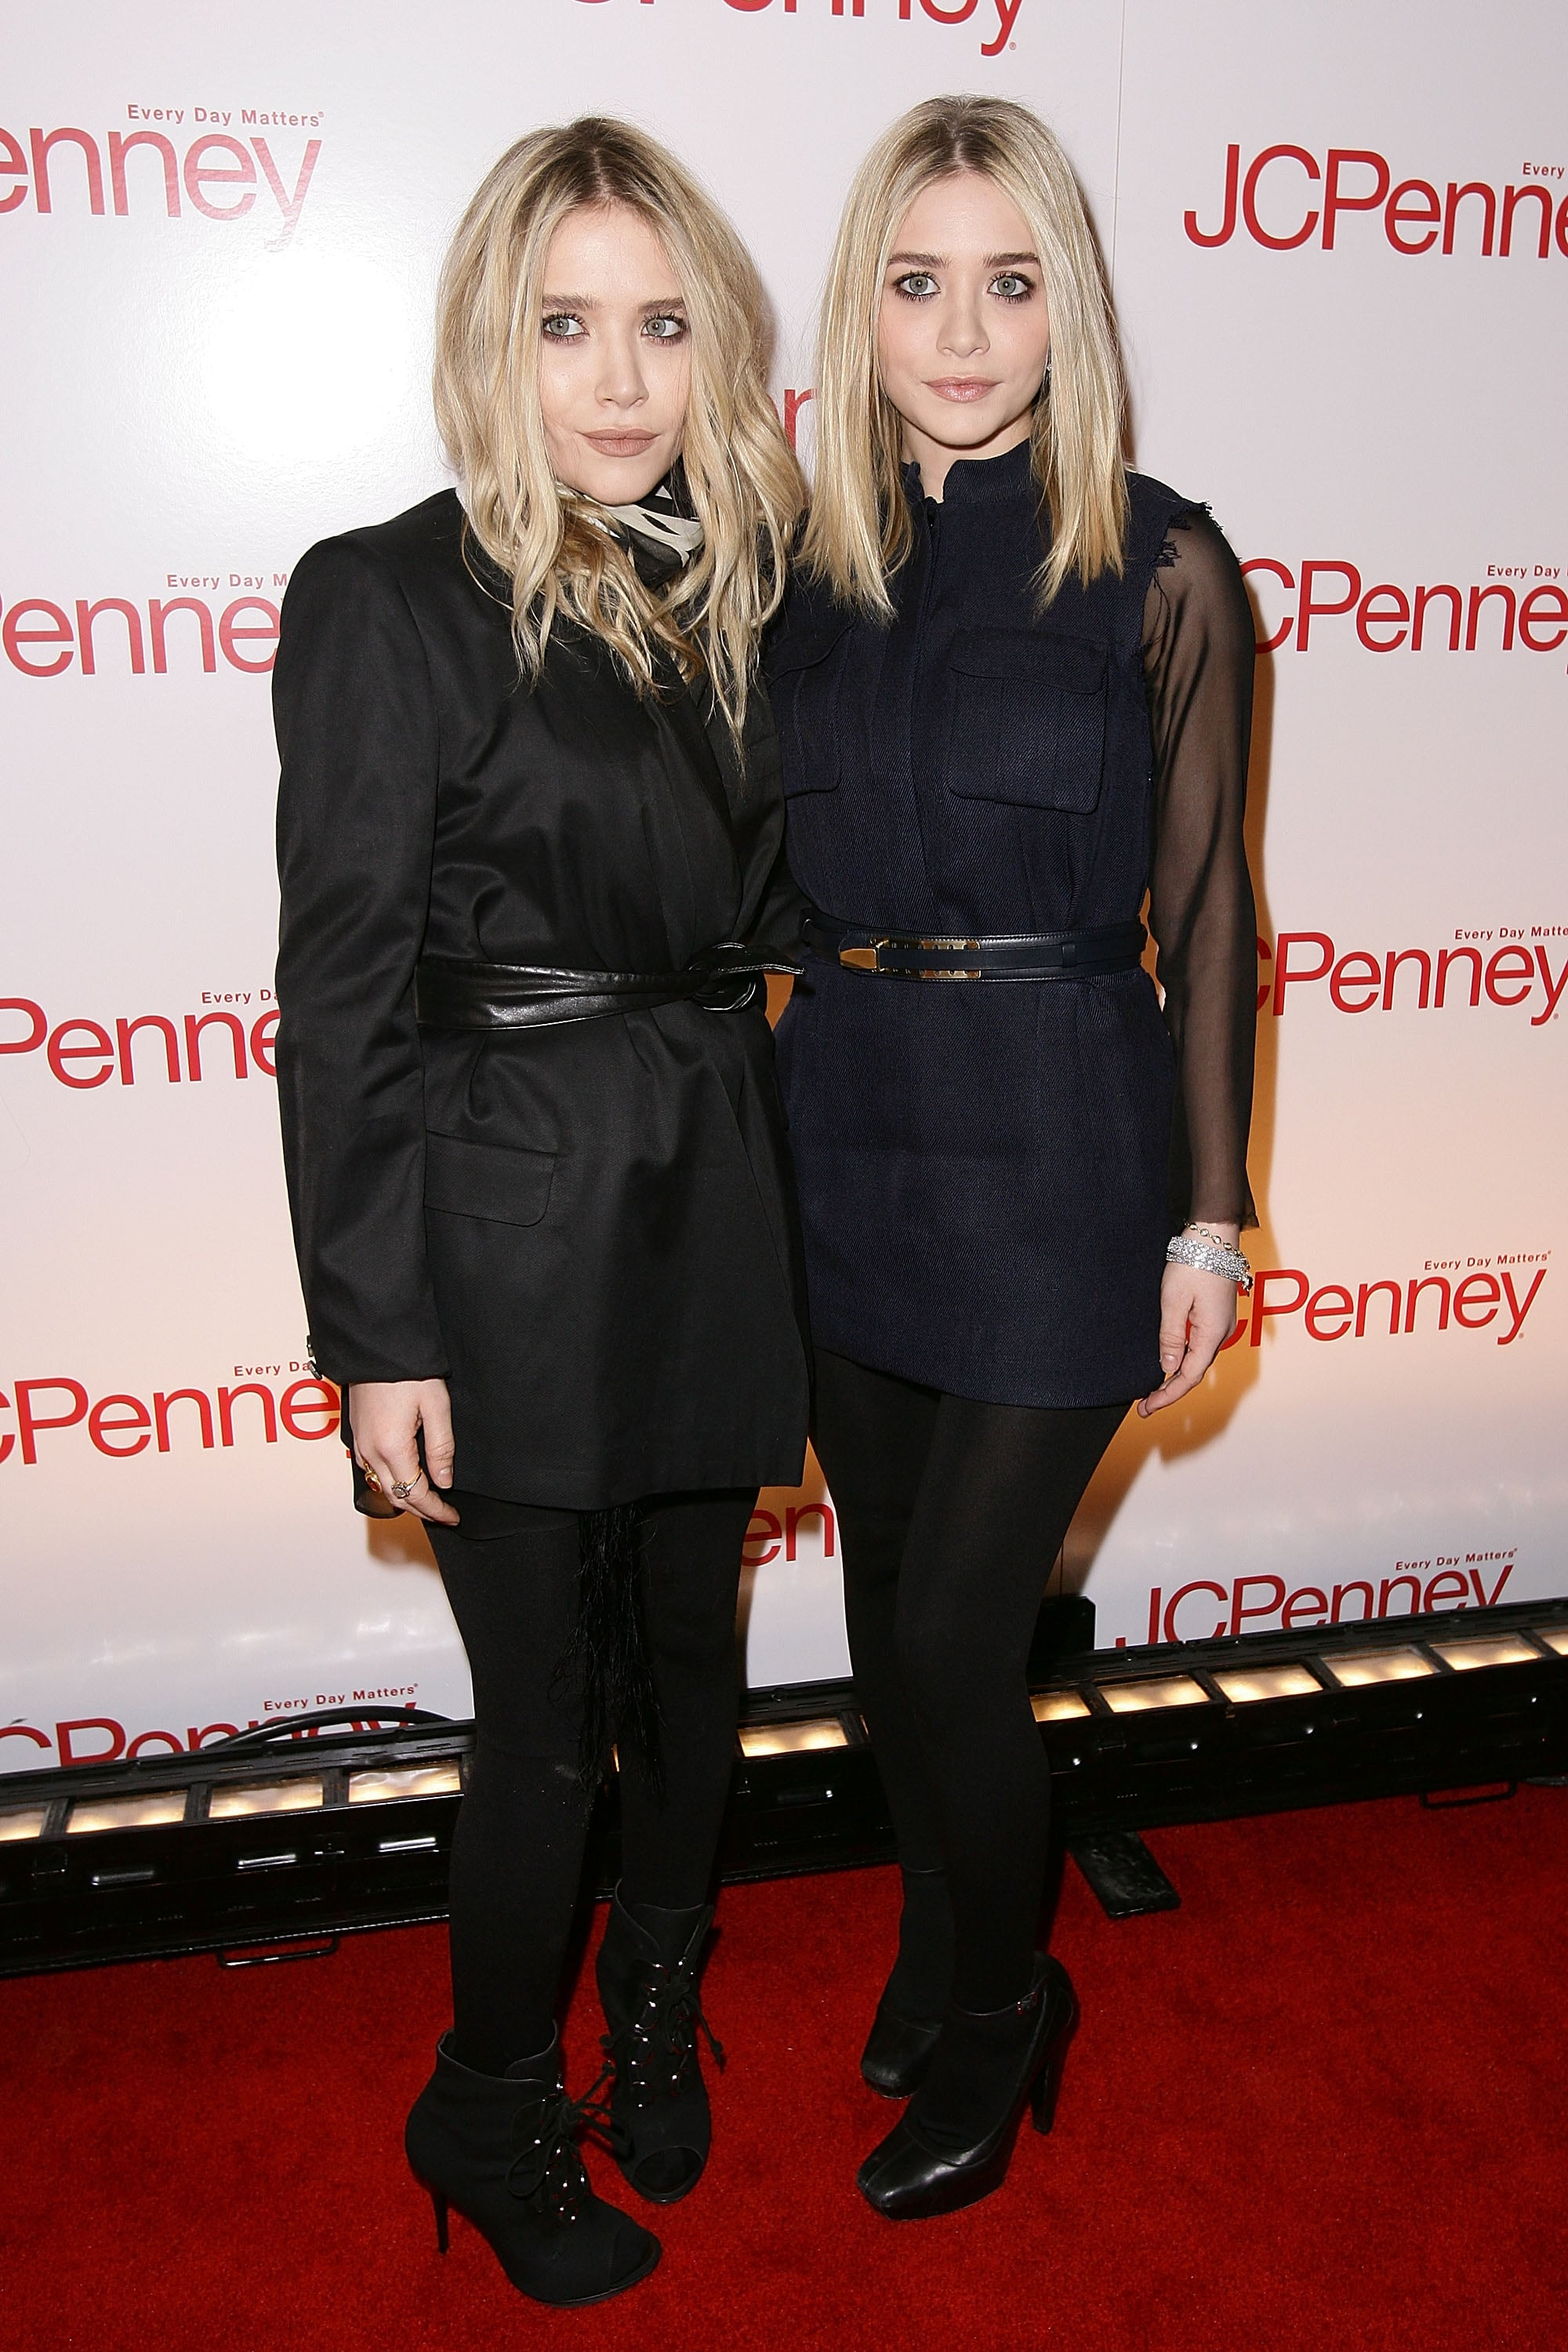 Twinning combo: The blond duo posed in cinched dresses and black tights for the JCPenney's Best of Spring Showcase in March 2010.  Mary-Kate stuck with an all-black palette in a cinched Dries Van Noten blazer and suede booties. Ashley married navy and black in a sleeveless wool-blend minidress by Jil Sander with black tights and Mary Janes.